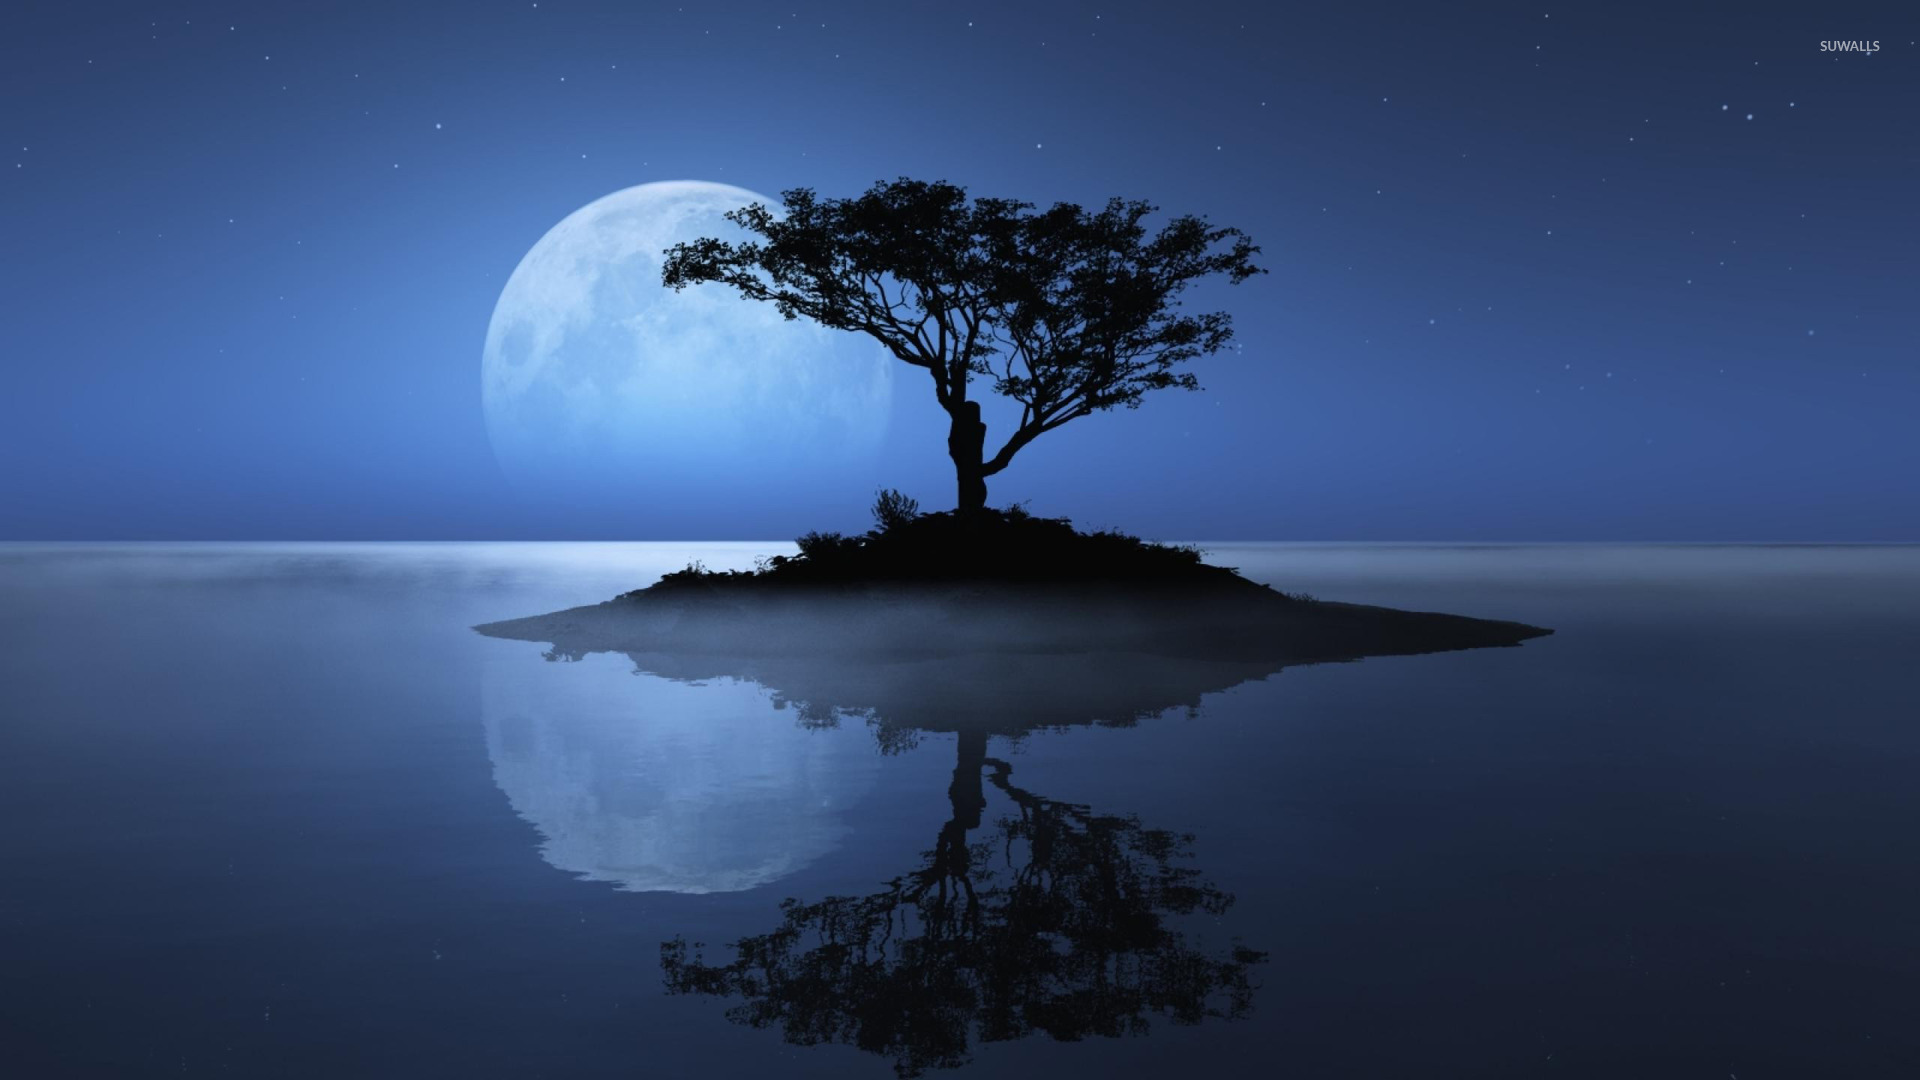 Blue moon over the water wallpaper   Fantasy wallpapers   12483 1920x1080